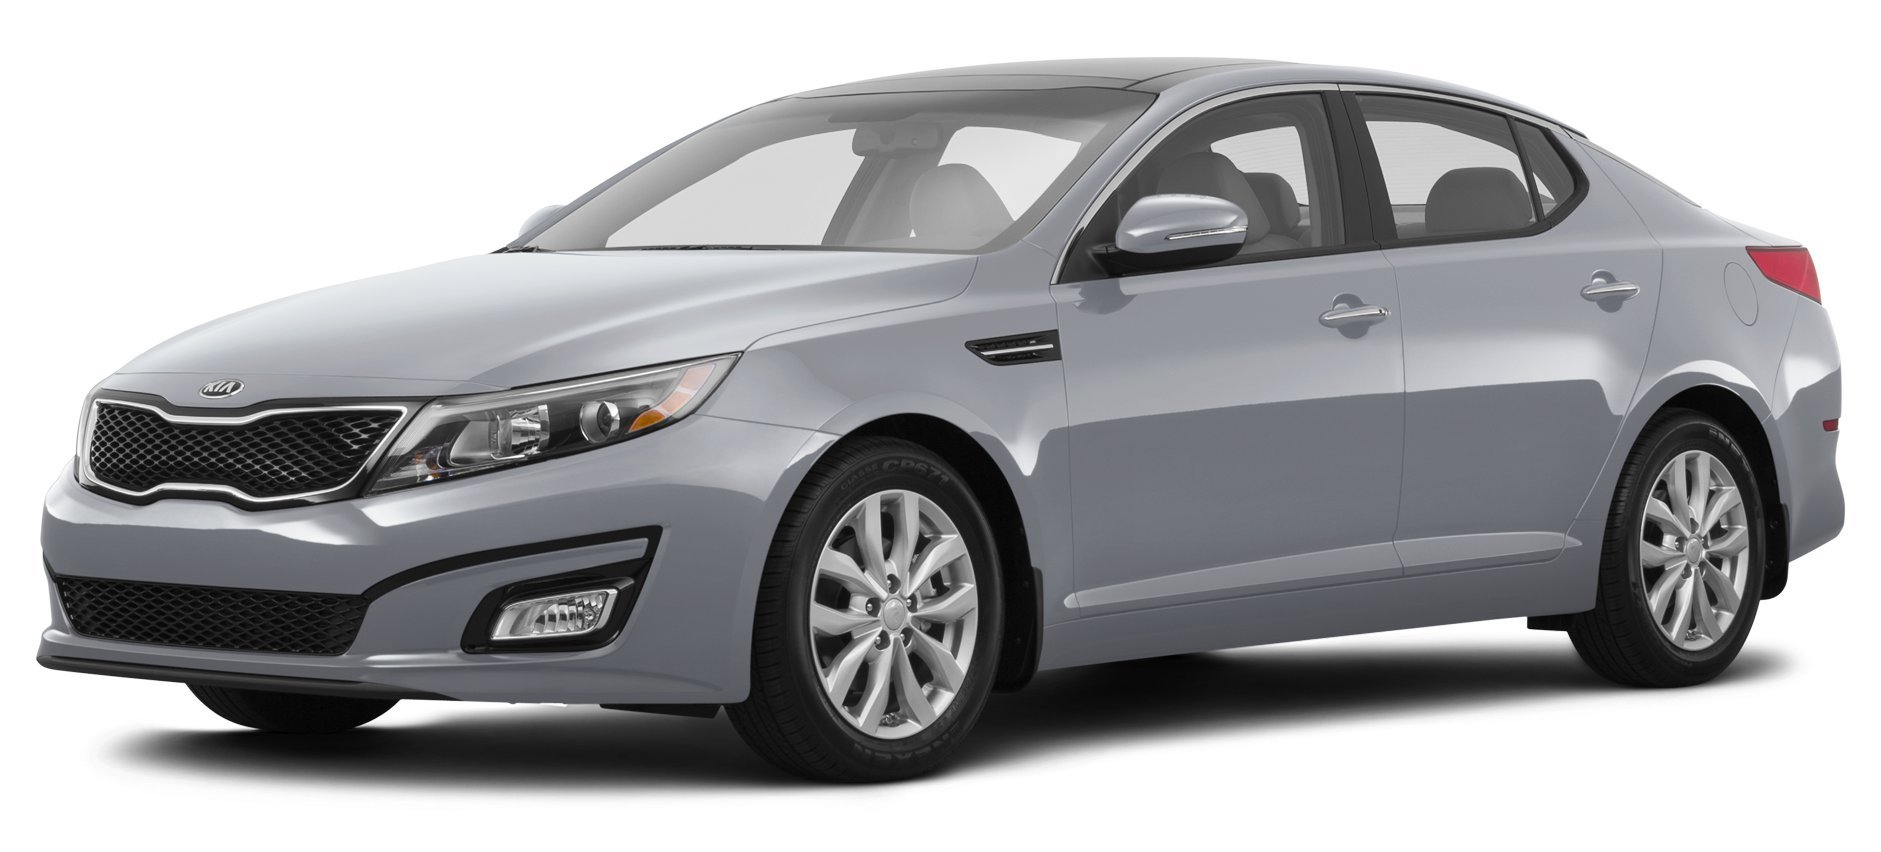 resp honda vs comp accord hybrid optima clp kia